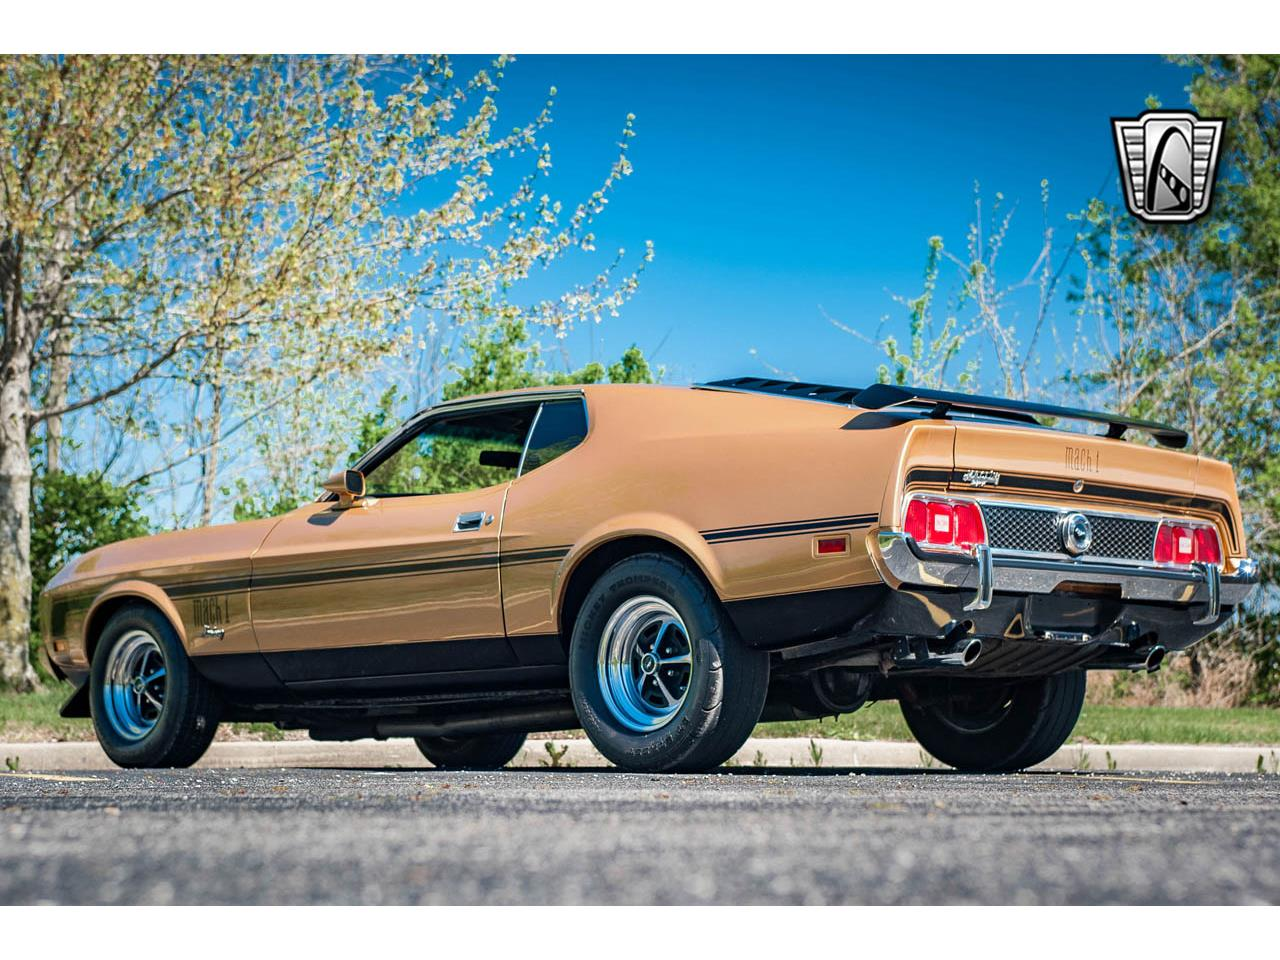 Large Picture of Classic '73 Mustang located in Illinois Offered by Gateway Classic Cars - St. Louis - QB8T